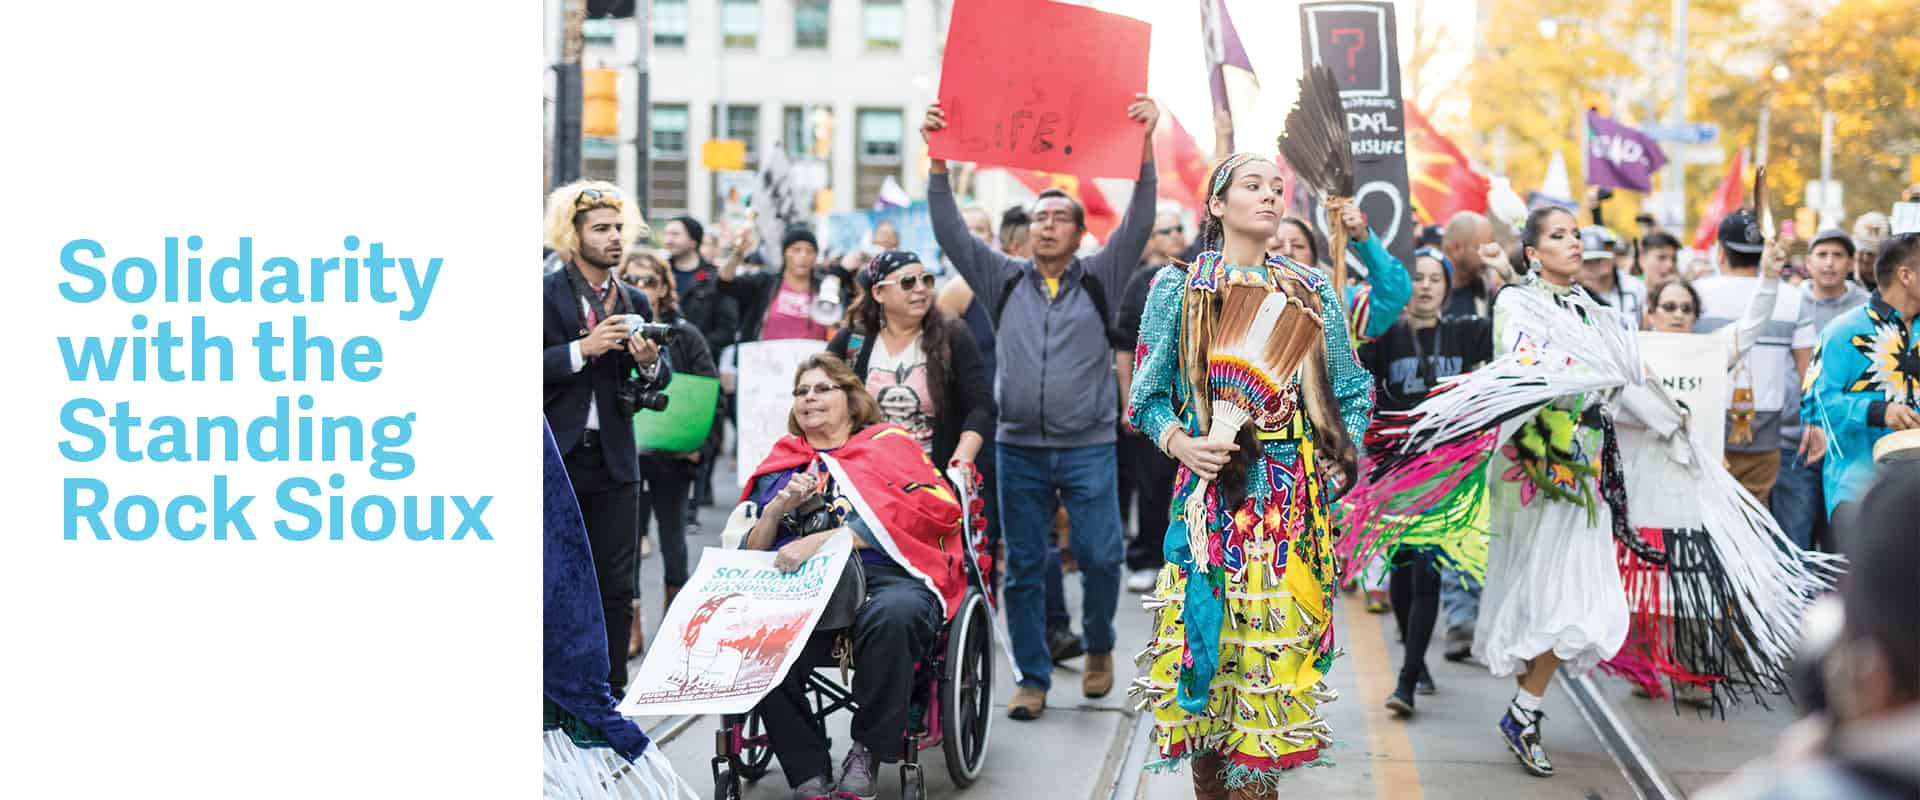 Solidarity with the Standing Rock Sioux